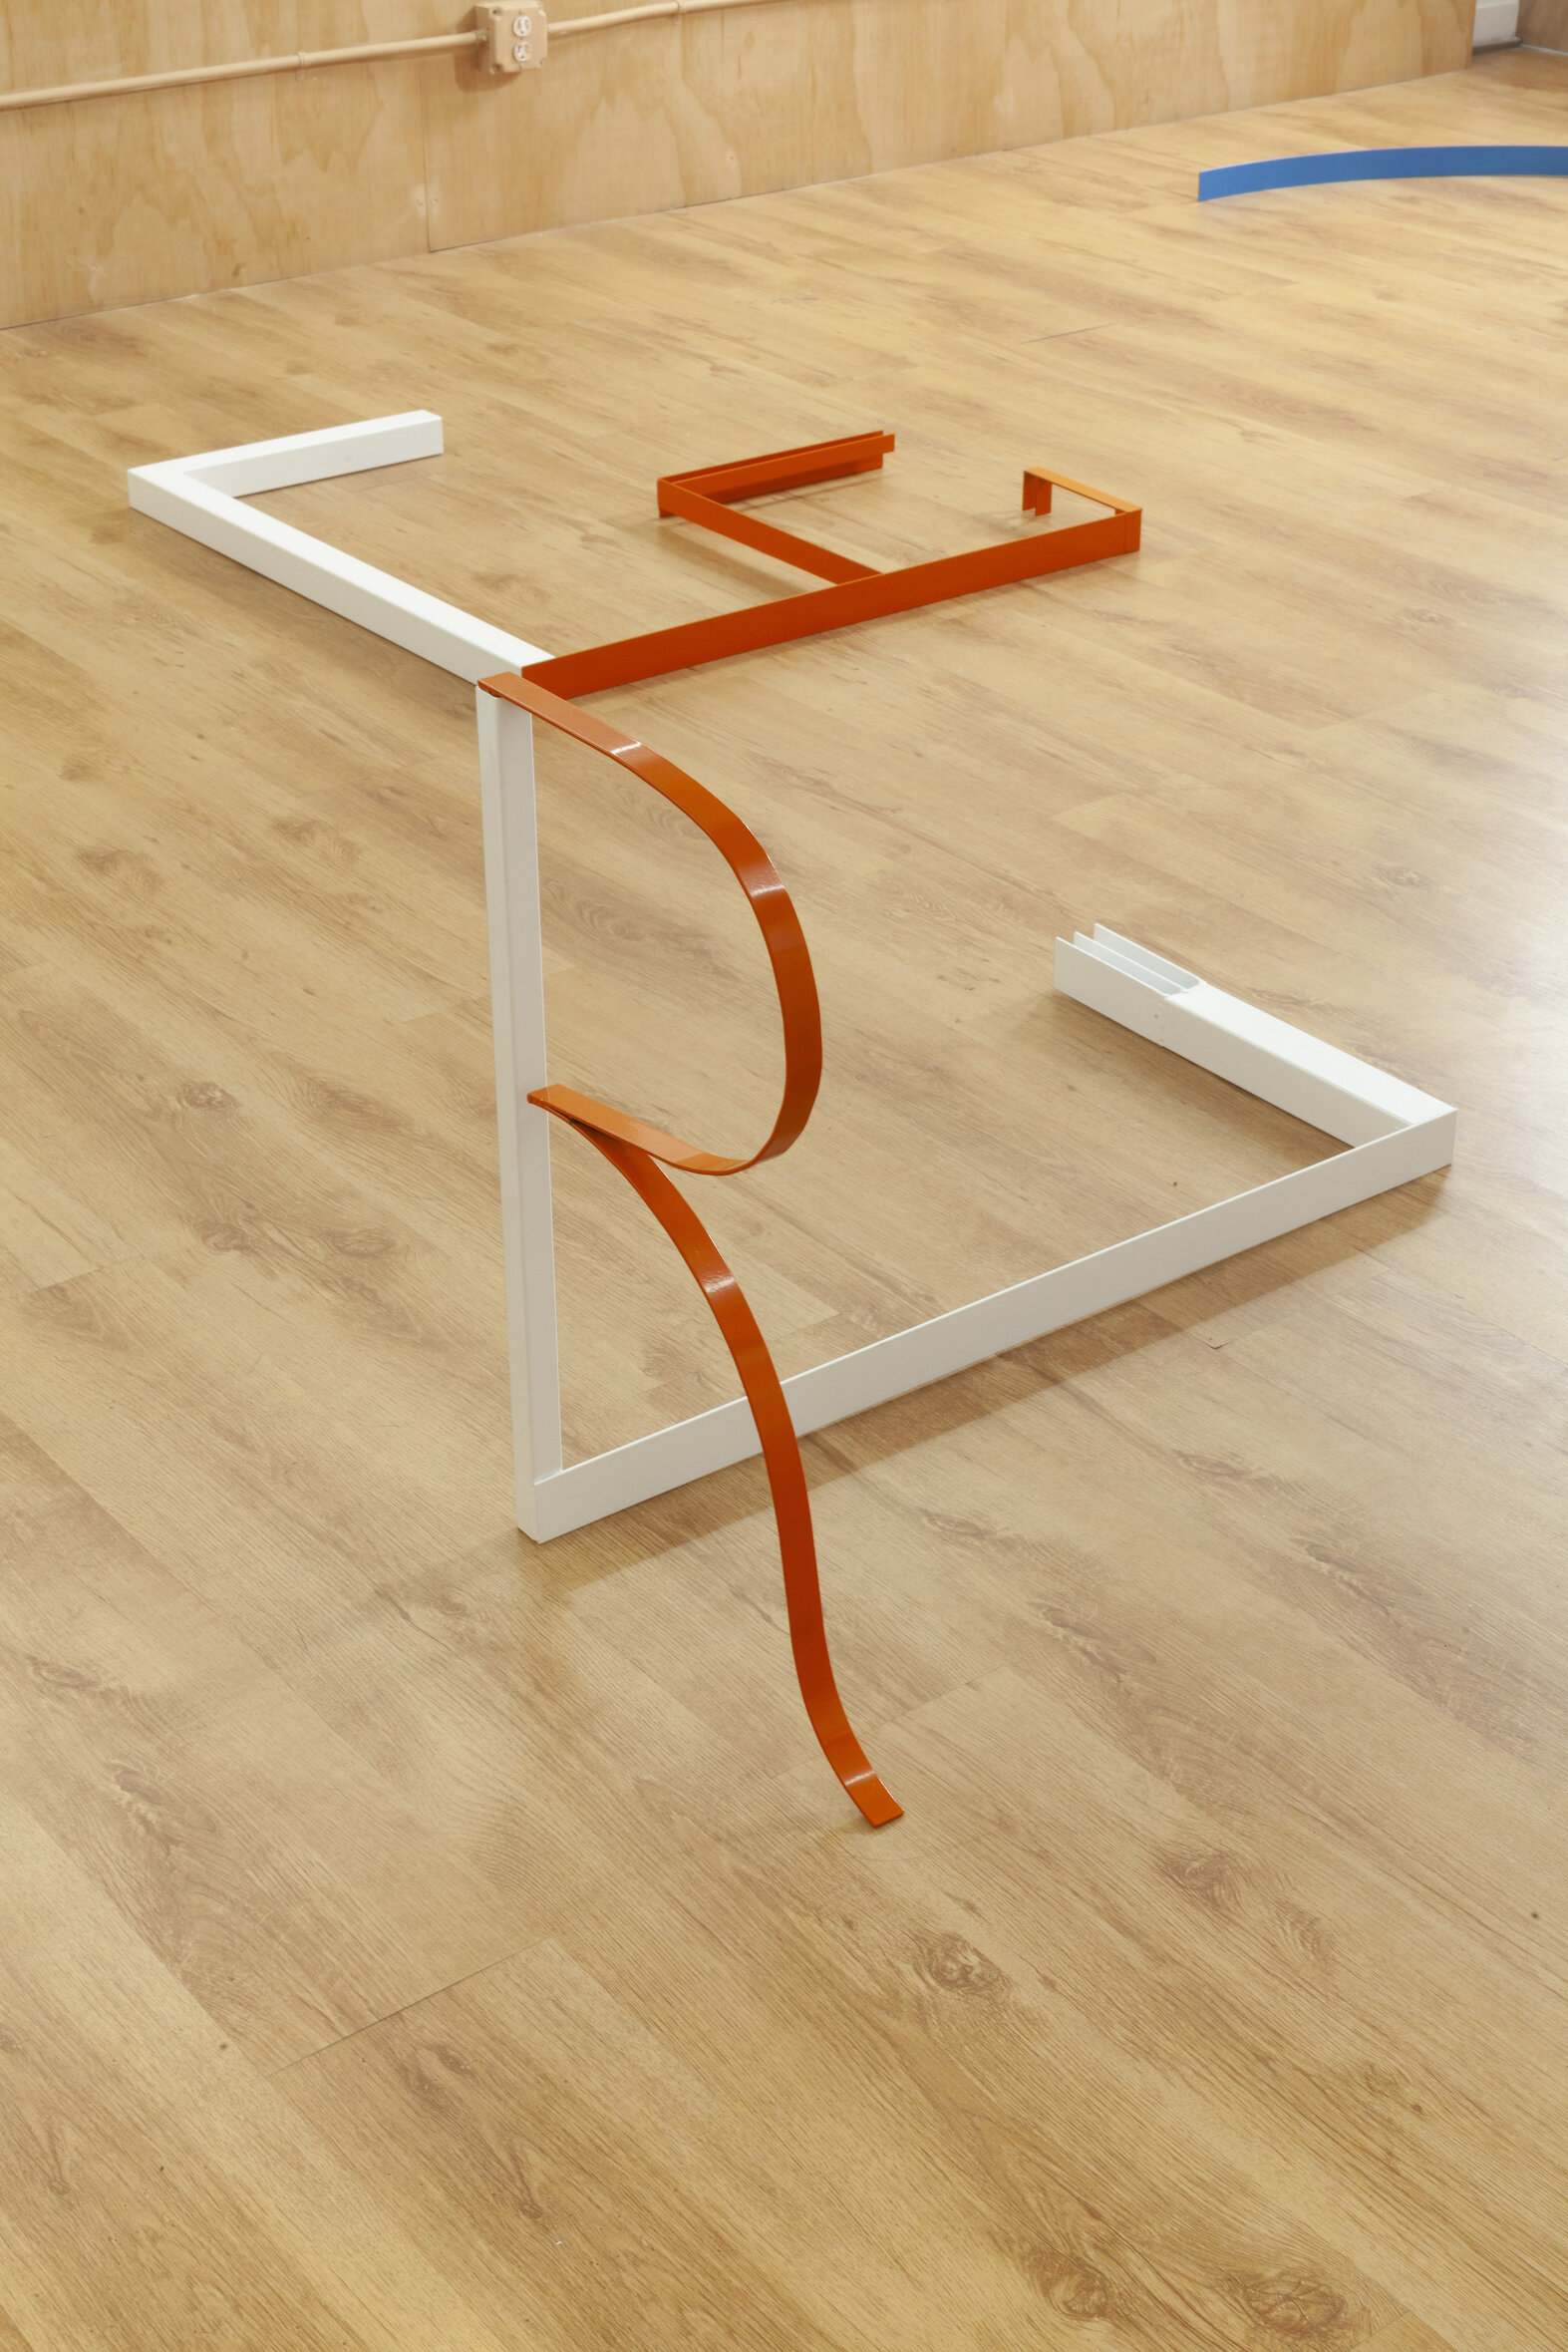 Various entry points 5,  2019, Powder coated steel, 36 x 25 x 18 inches